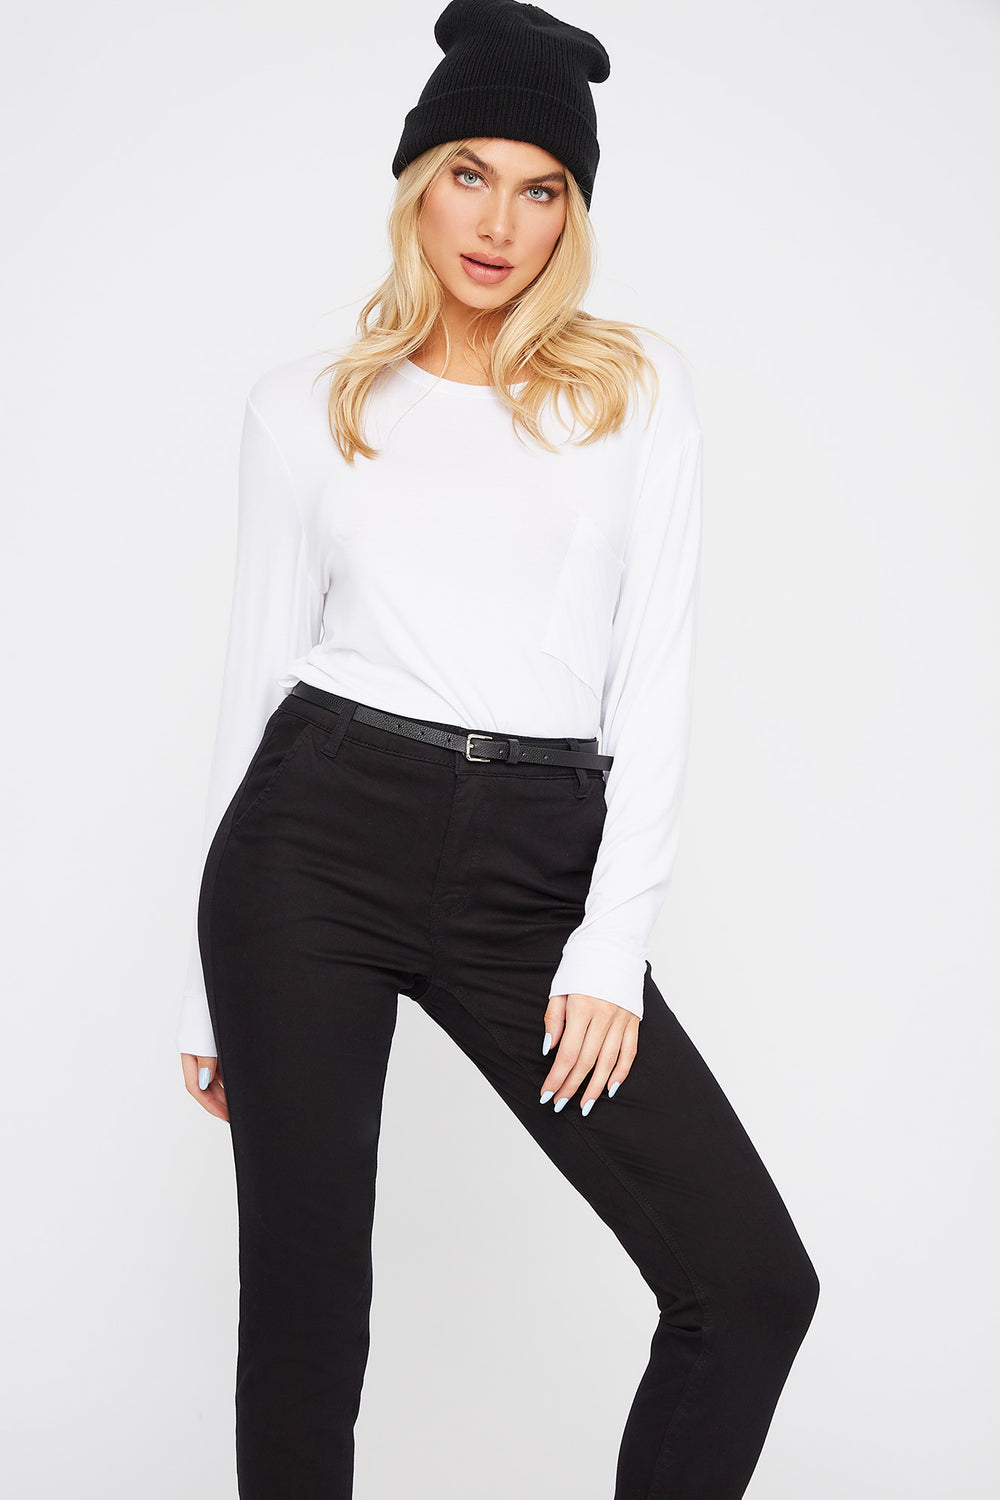 Scoop Neck Pocket Long Sleeve White